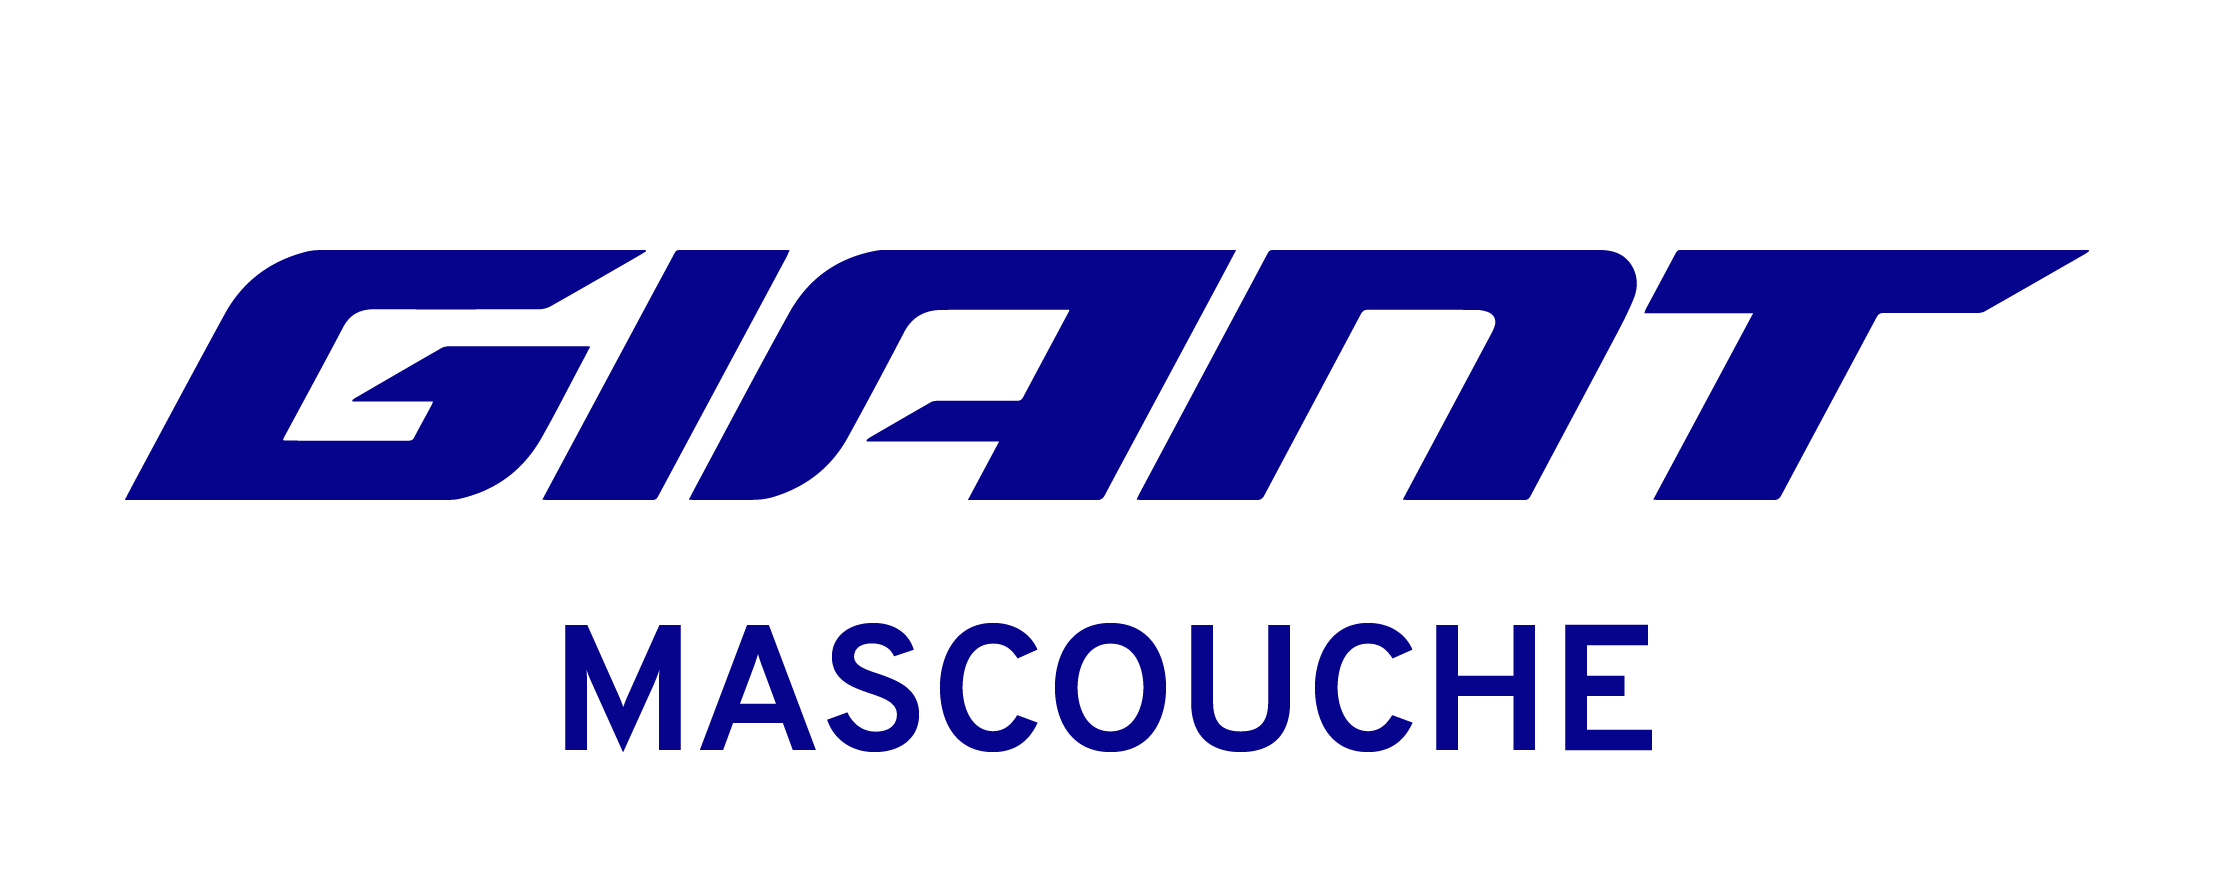 Giant Mascouche Home Page